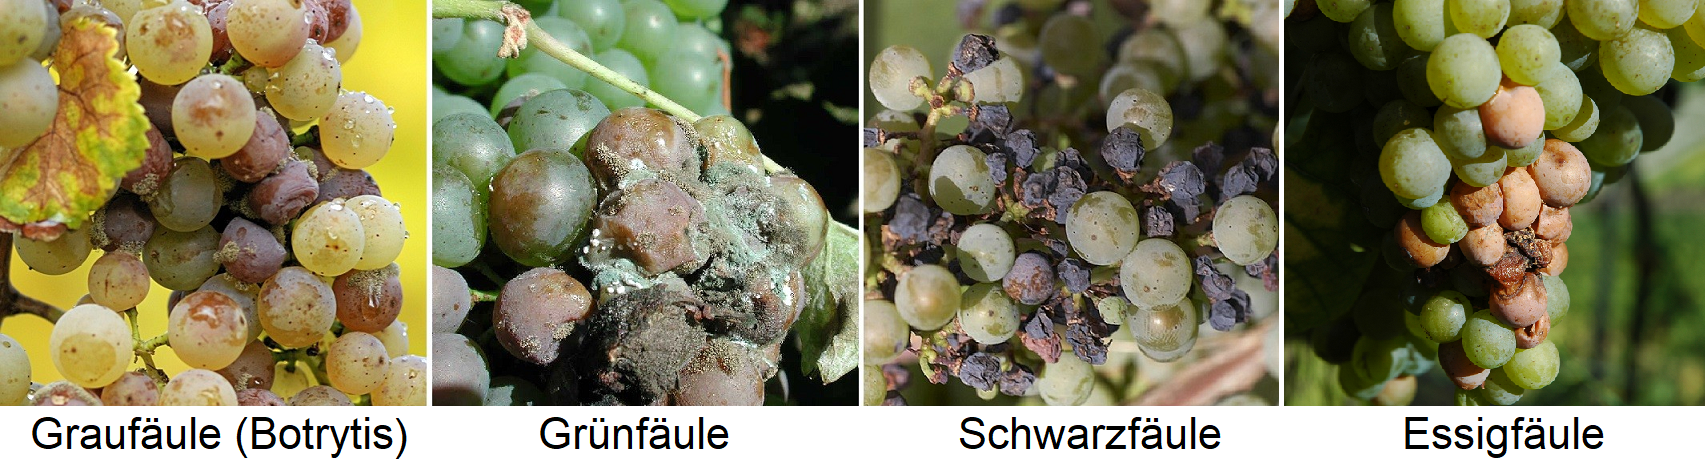 Grape rot - gray rot (botrytis), green rot, black rot, vinegar blight